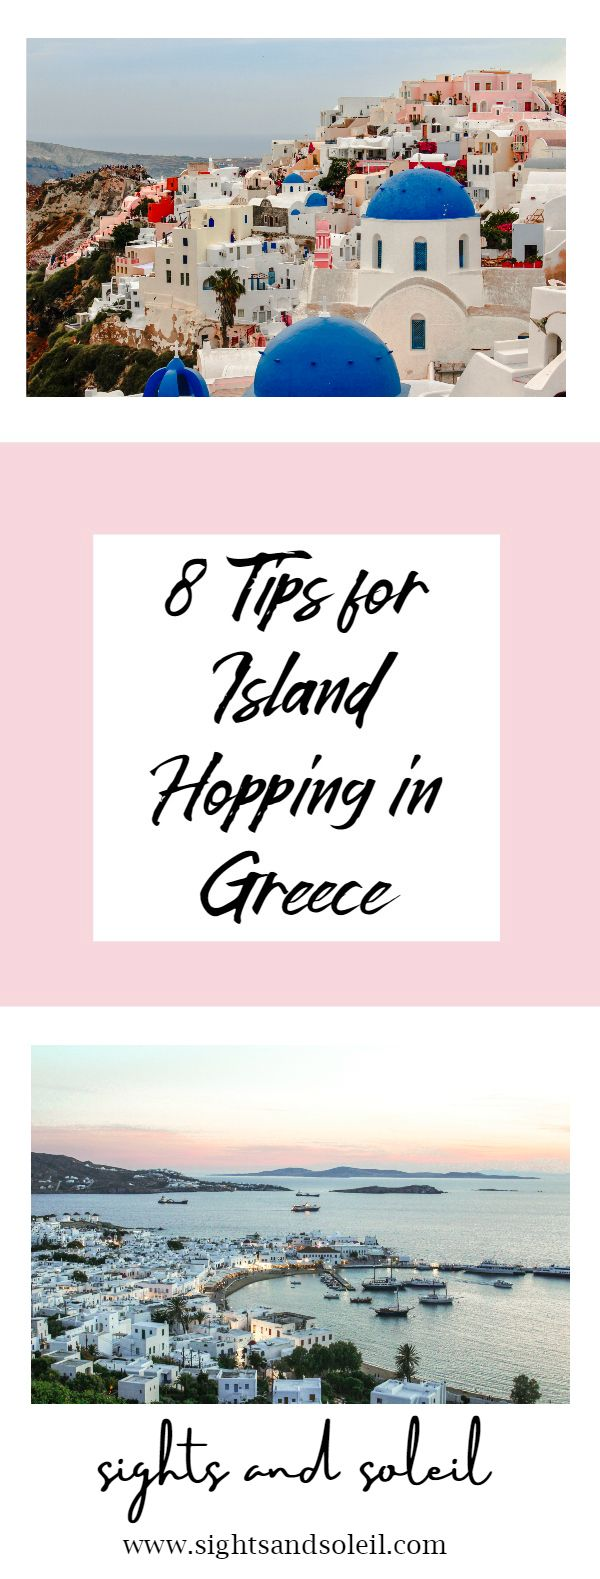 8 Tips for Island Hopping in Greece